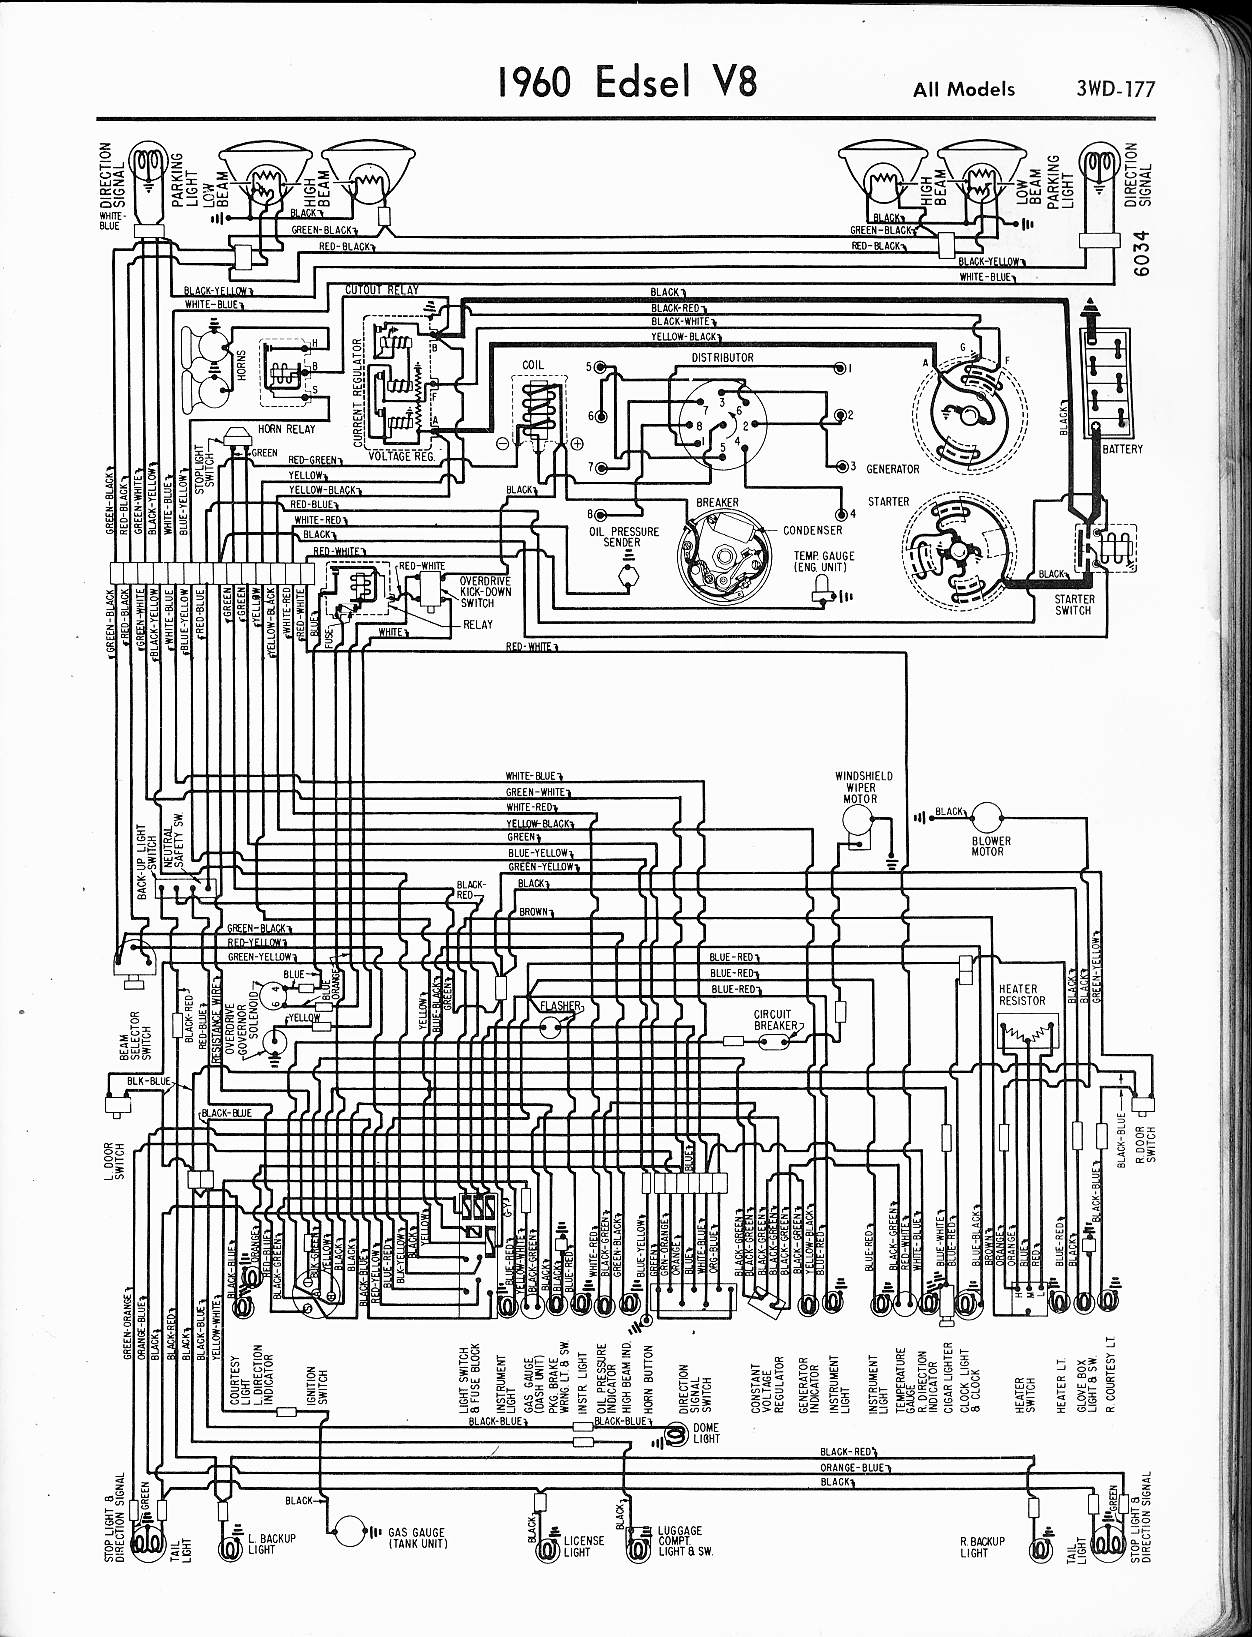 edsel wiring diagrams1958 Ford Edsel Ranger On 1958 Edsel Citation Wiring Diagram For Ford #7